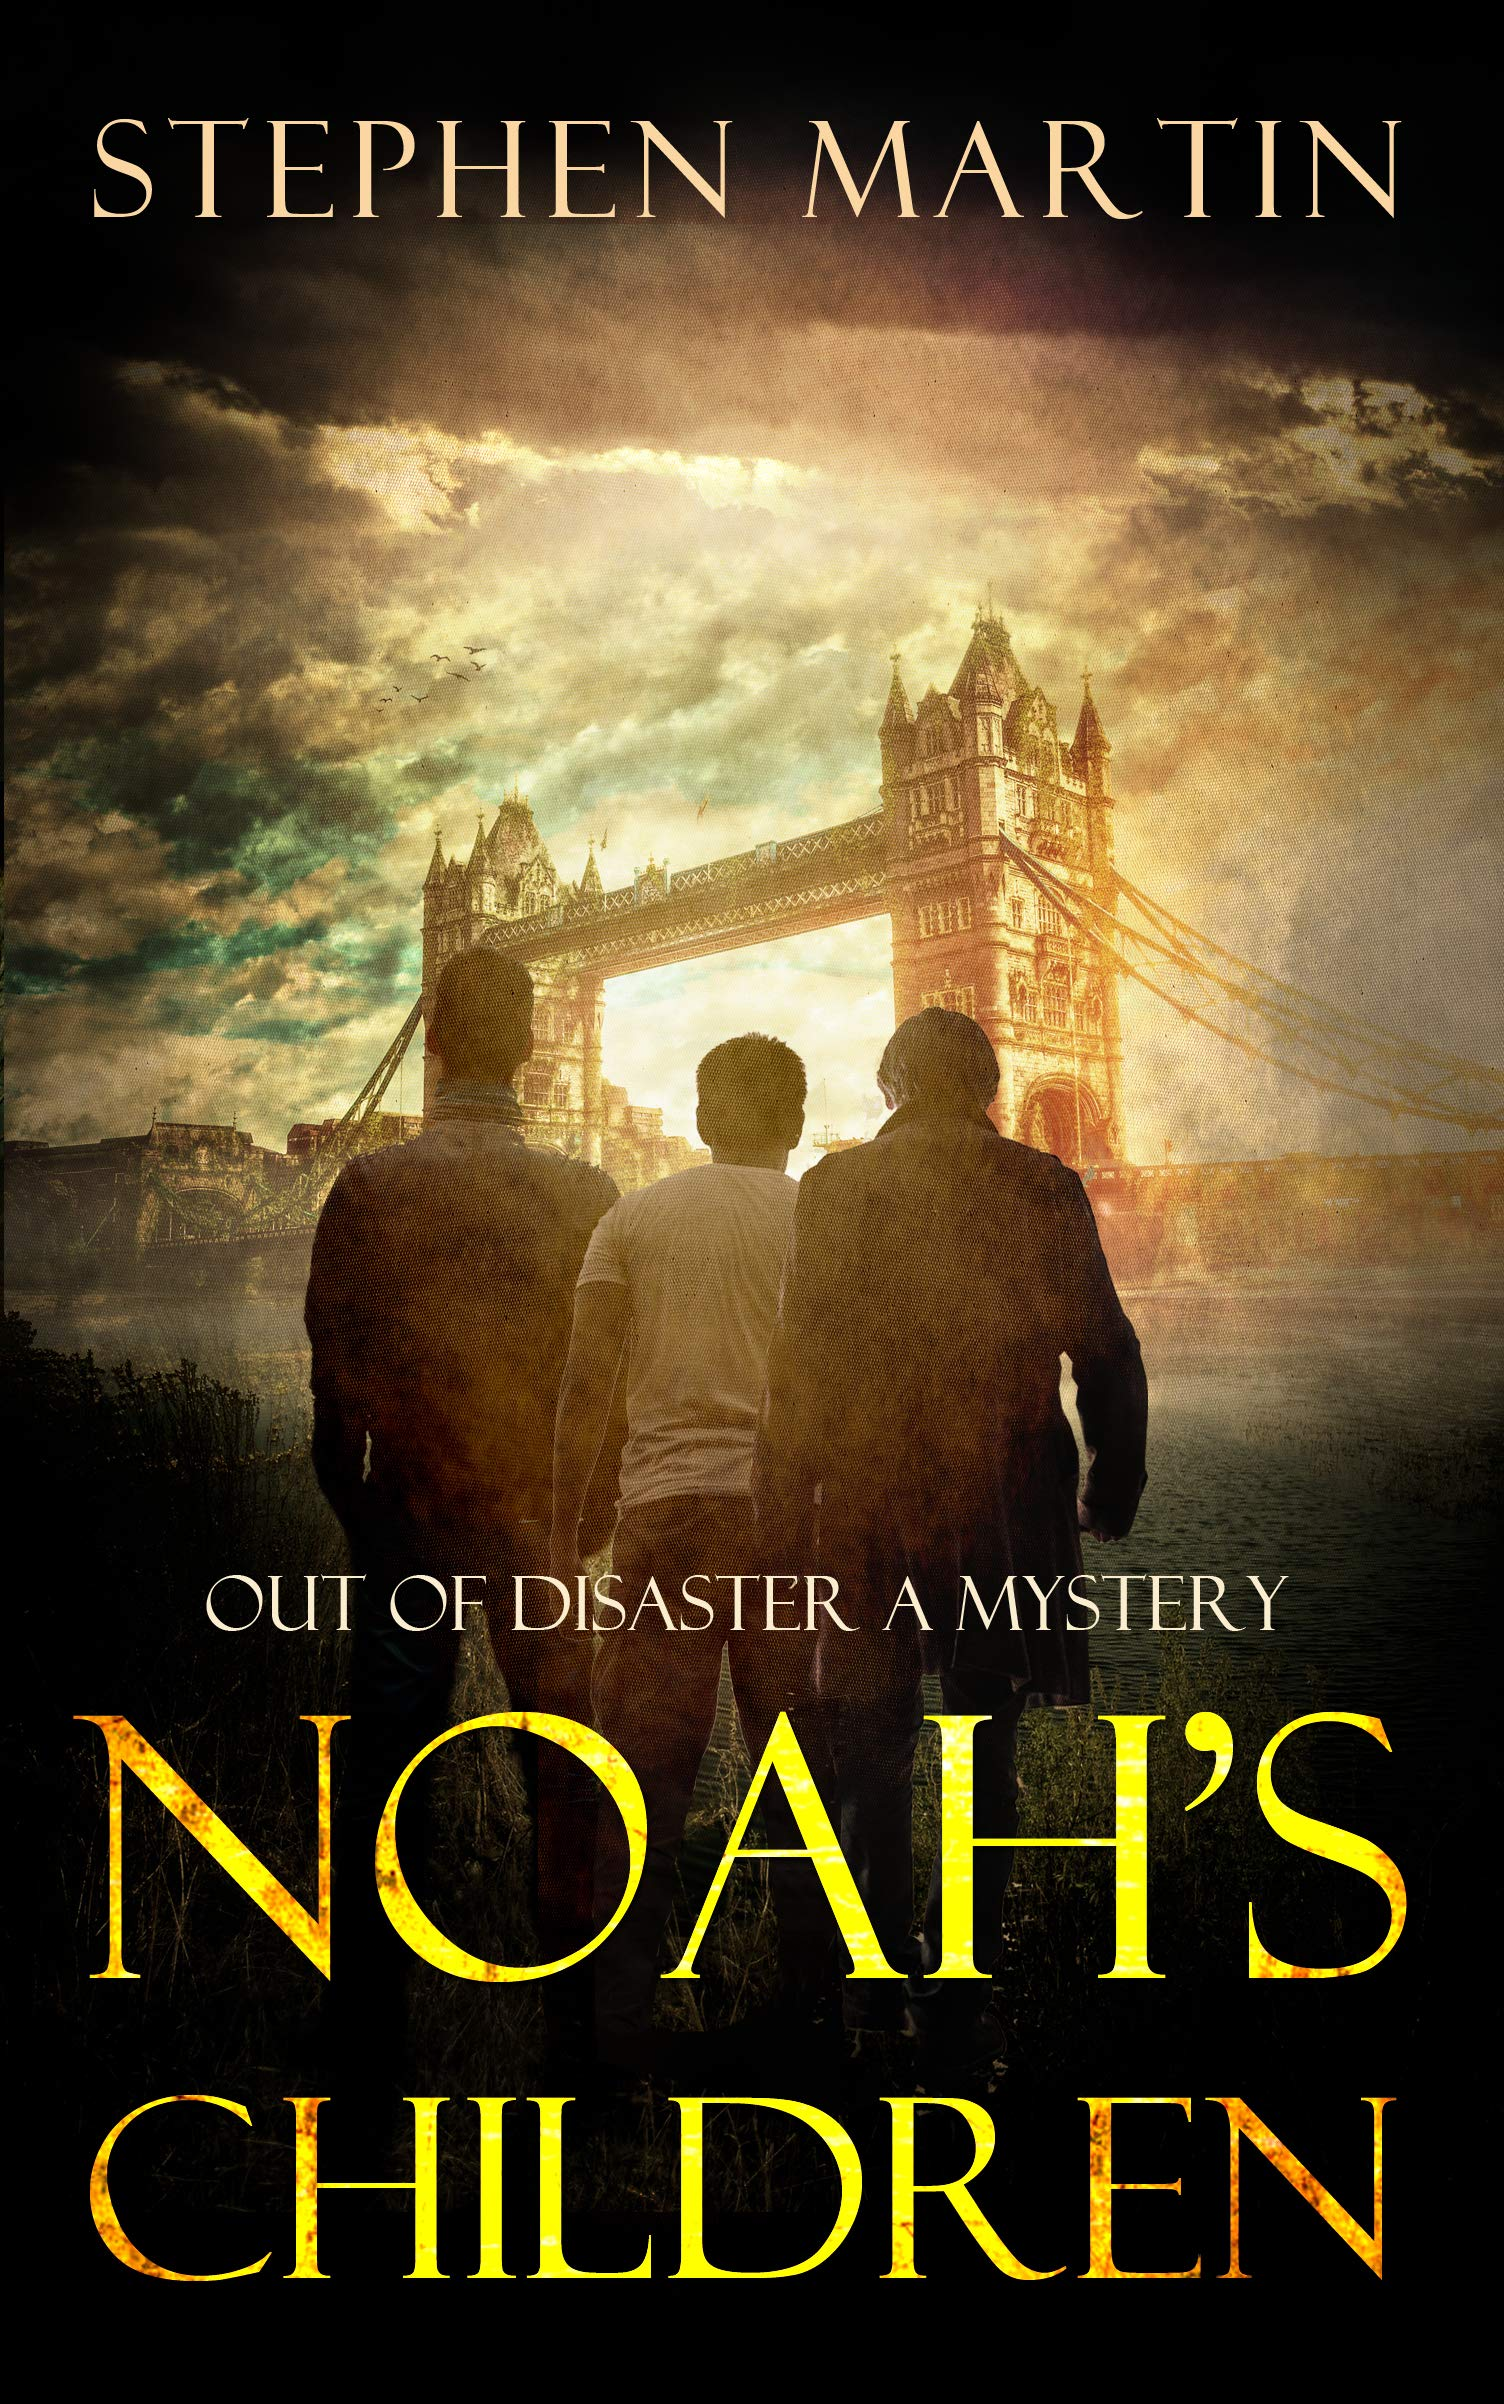 NOAH'S CHILDREN: OUT OF DISASTER A MYSTERY